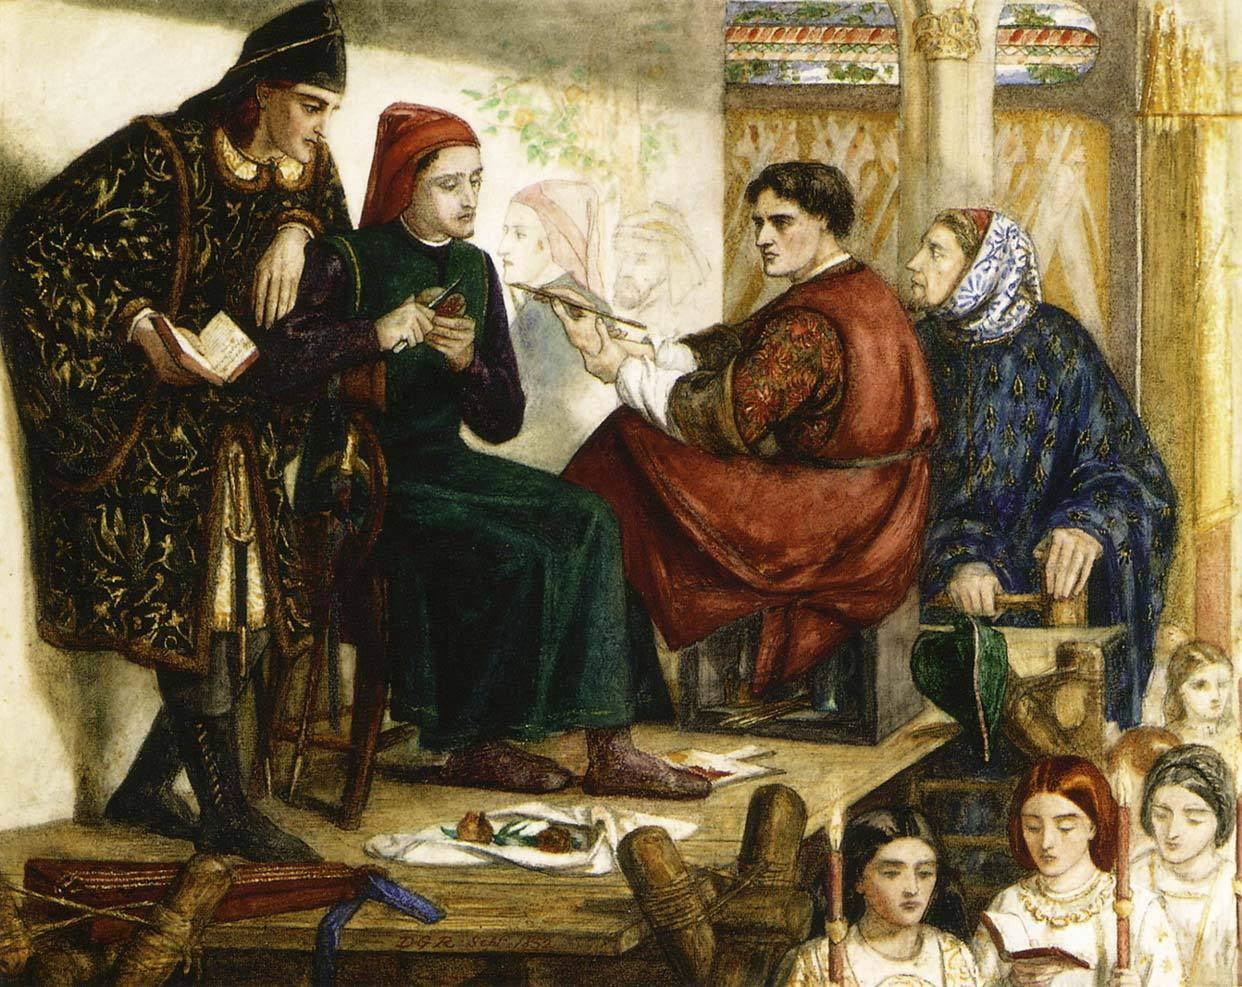 Giotto Painting the Portrait of DanteDante Gabriel Rossetti1852